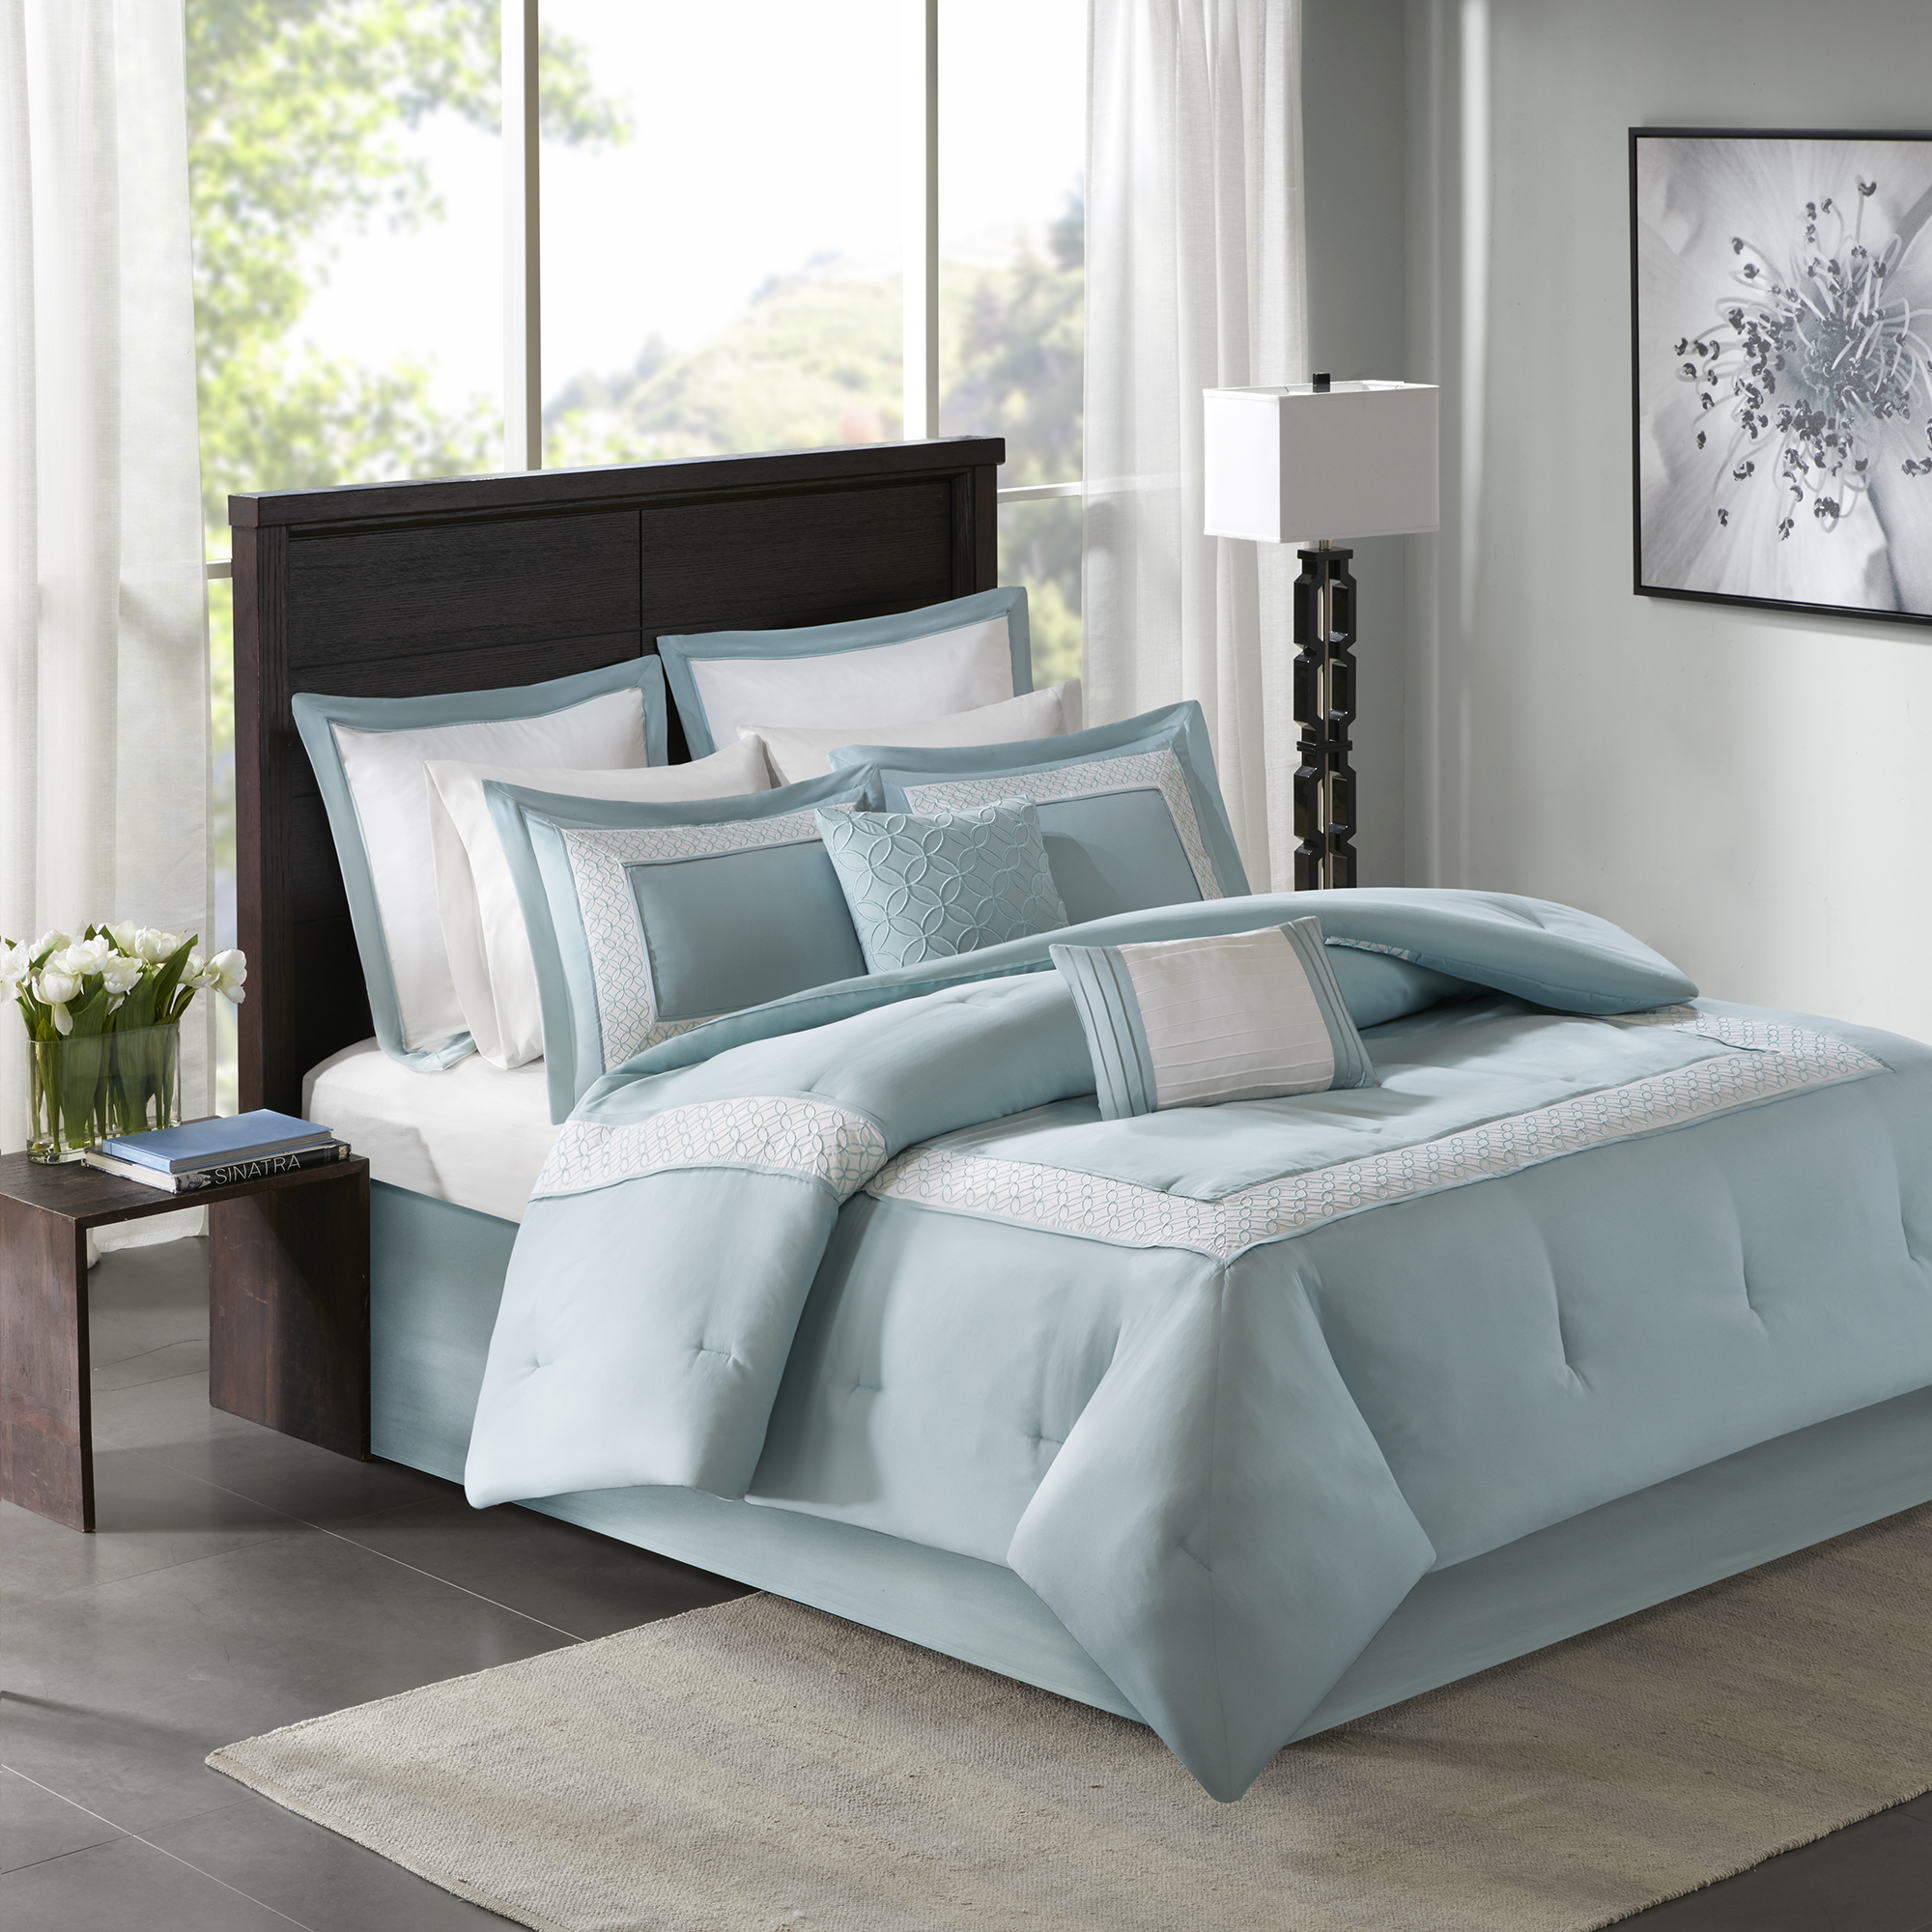 Home Essence Heritage 8 Piece Comforter Bedding Set with Bedskirt